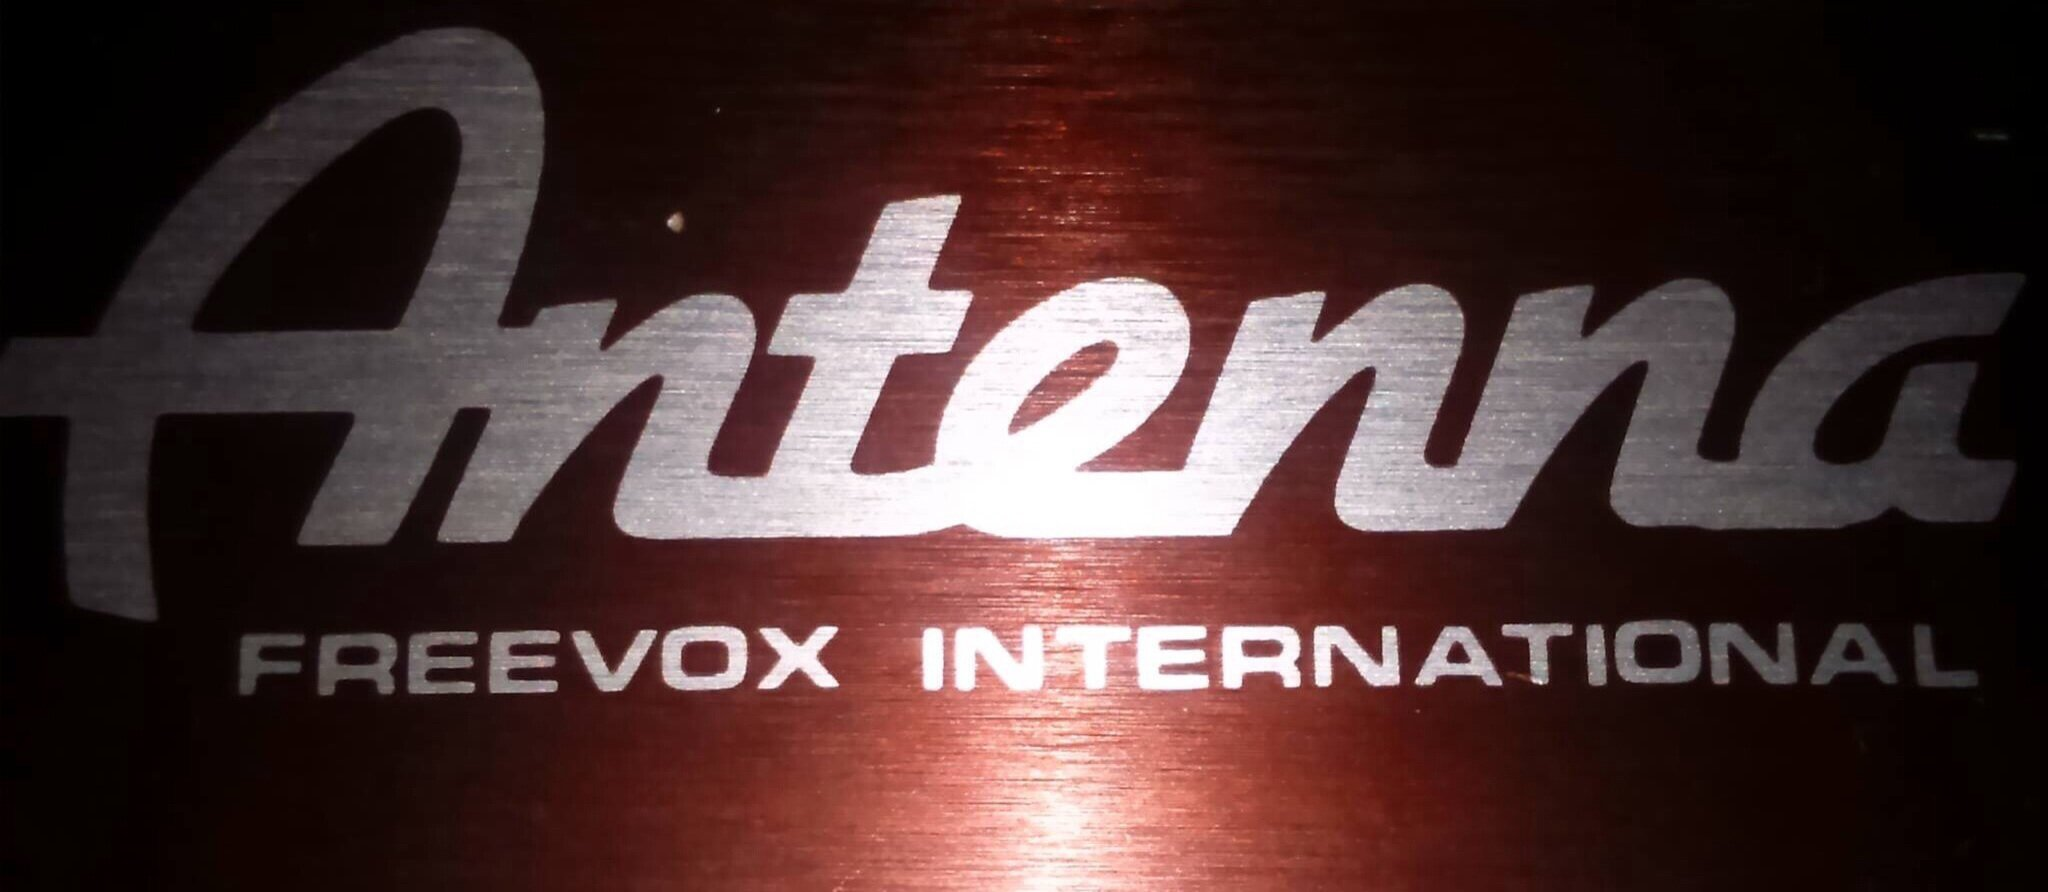 logo freevox : ANTENNA